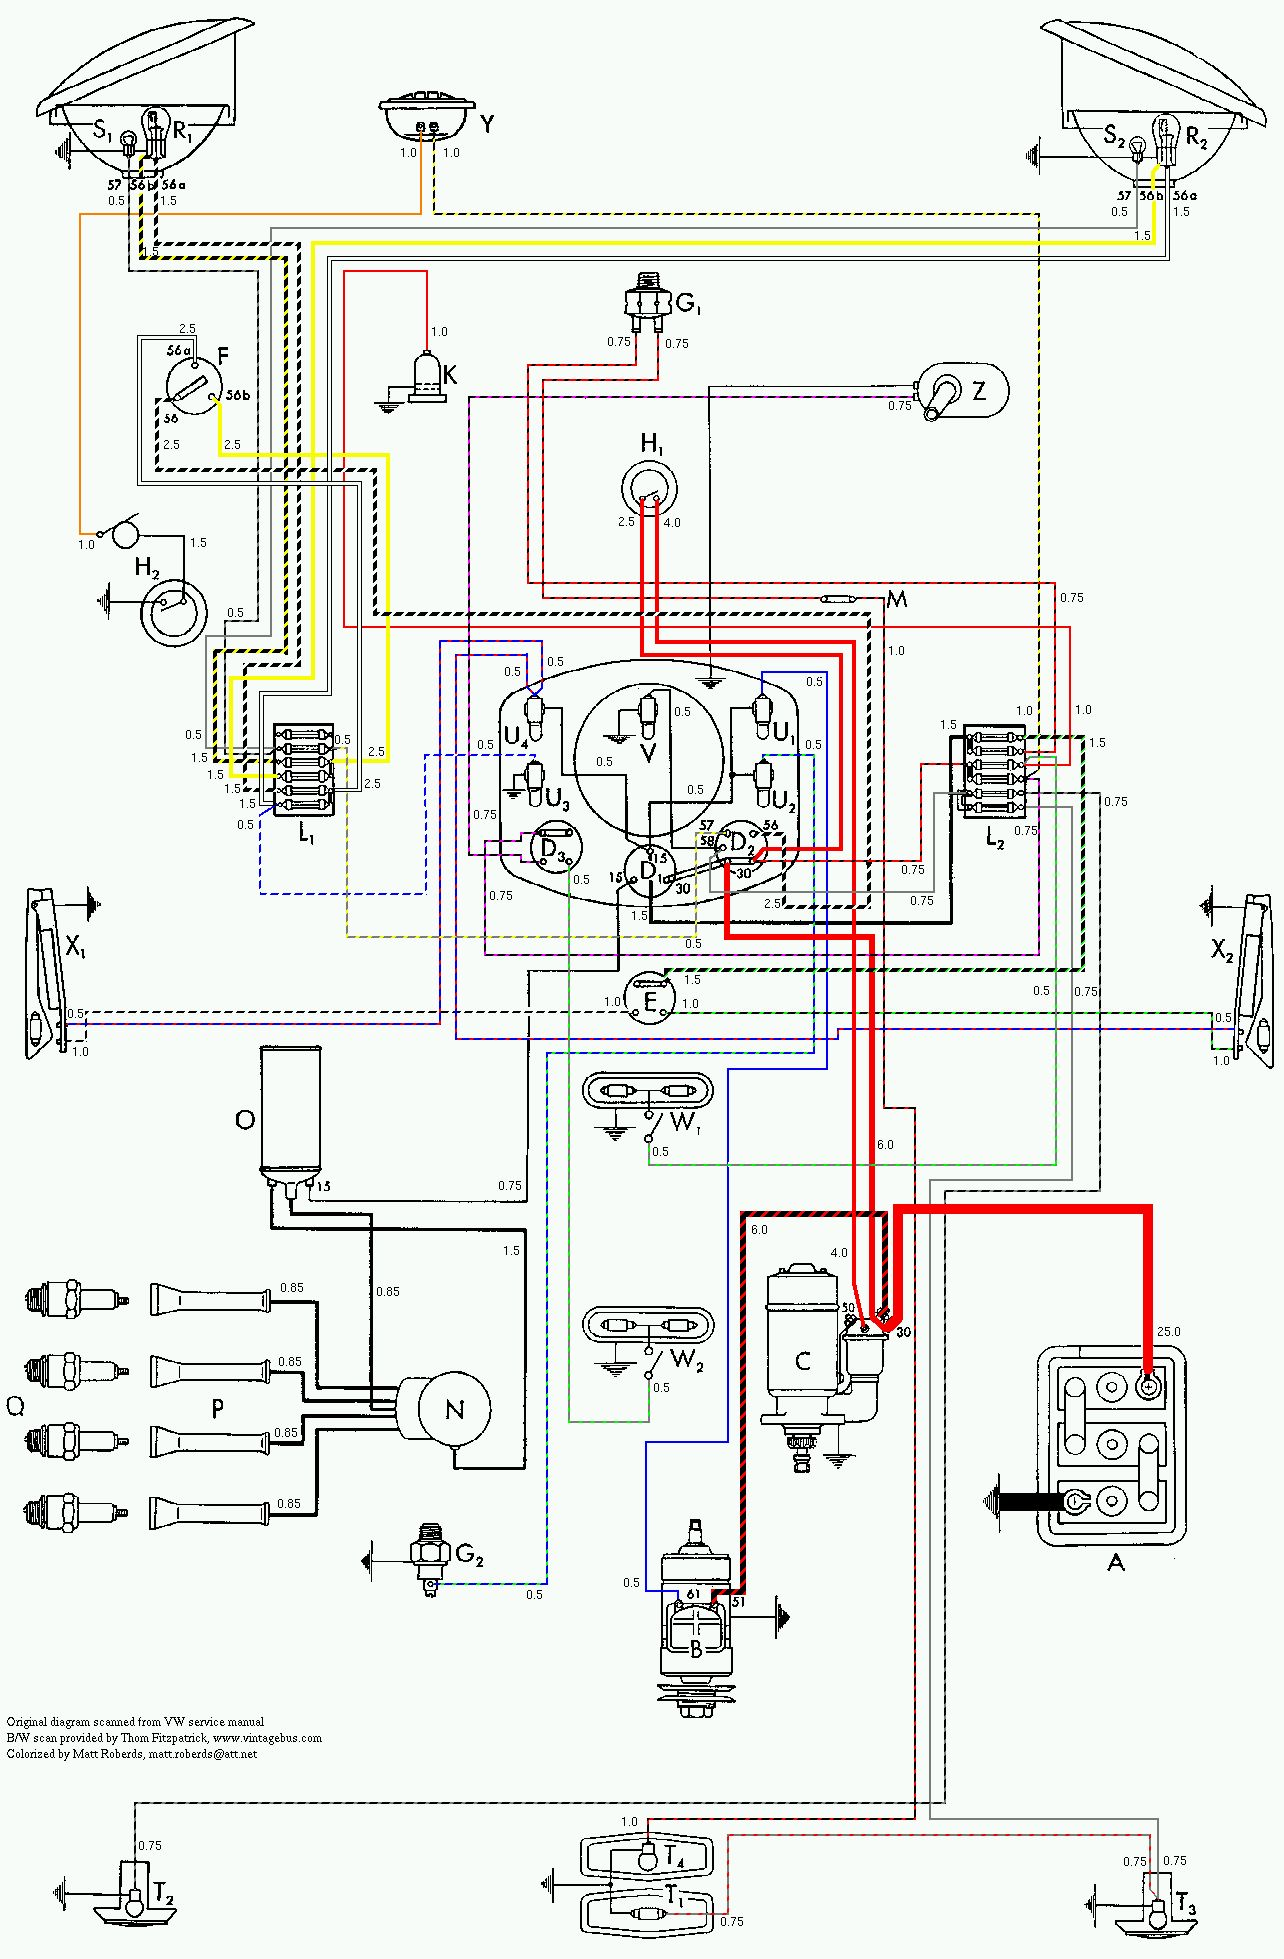 Awesome Vintagebus Com Vw Bus And Other Wiring Diagrams Wiring Cloud Ratagdienstapotheekhoekschewaardnl